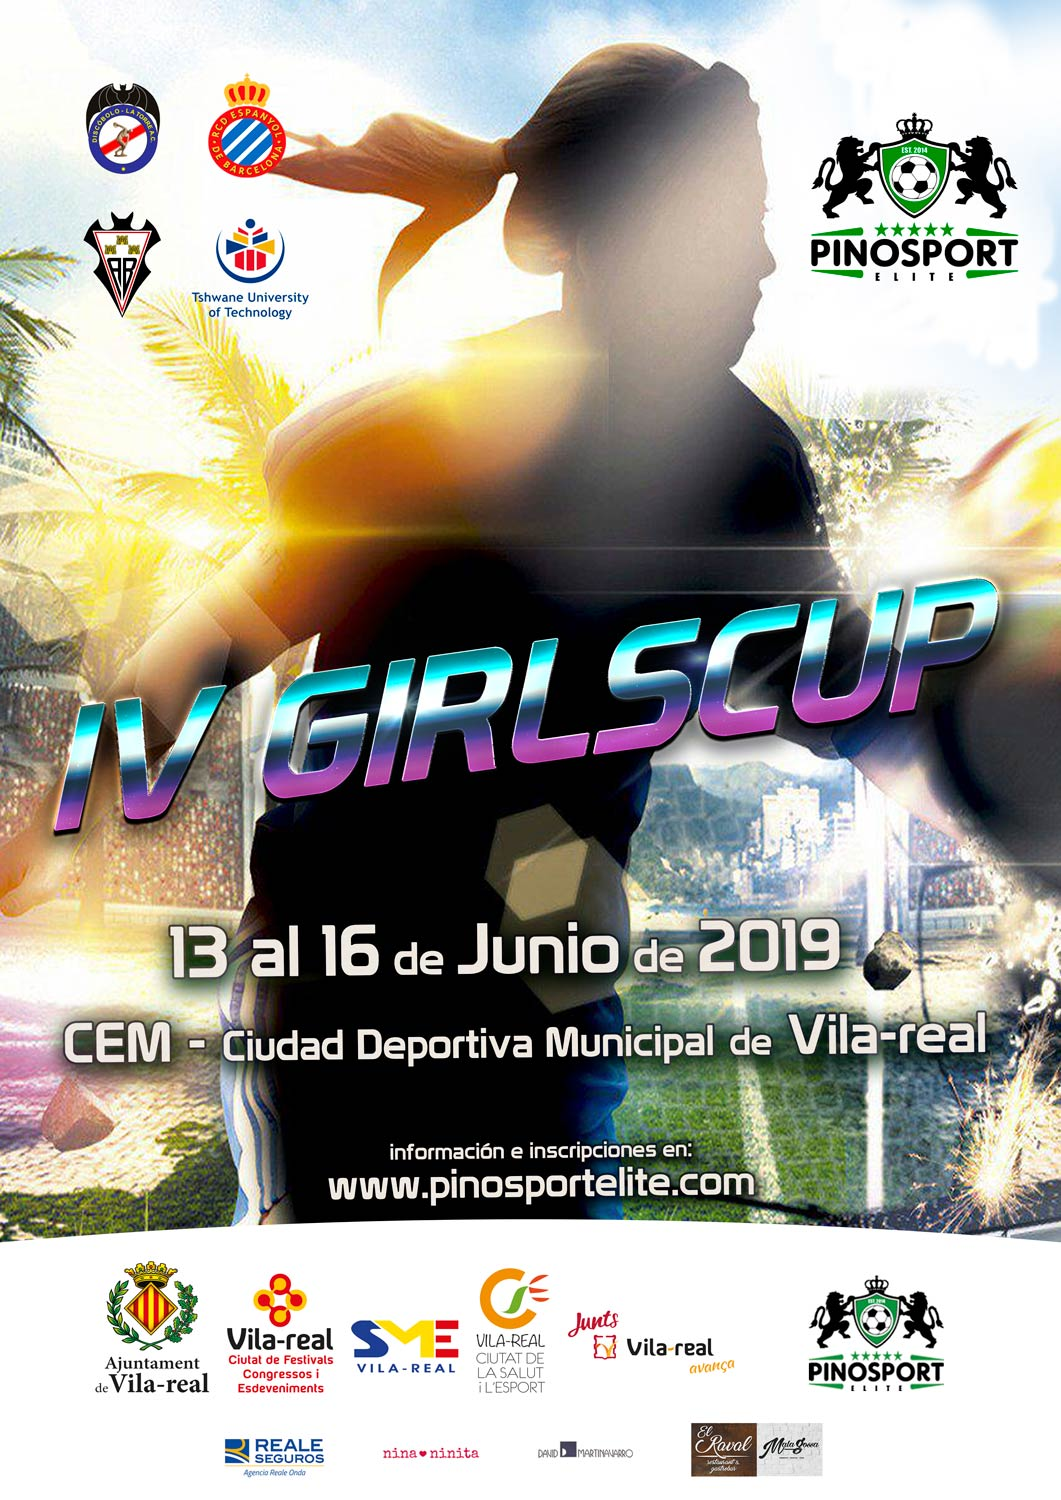 GirlsCup 2019